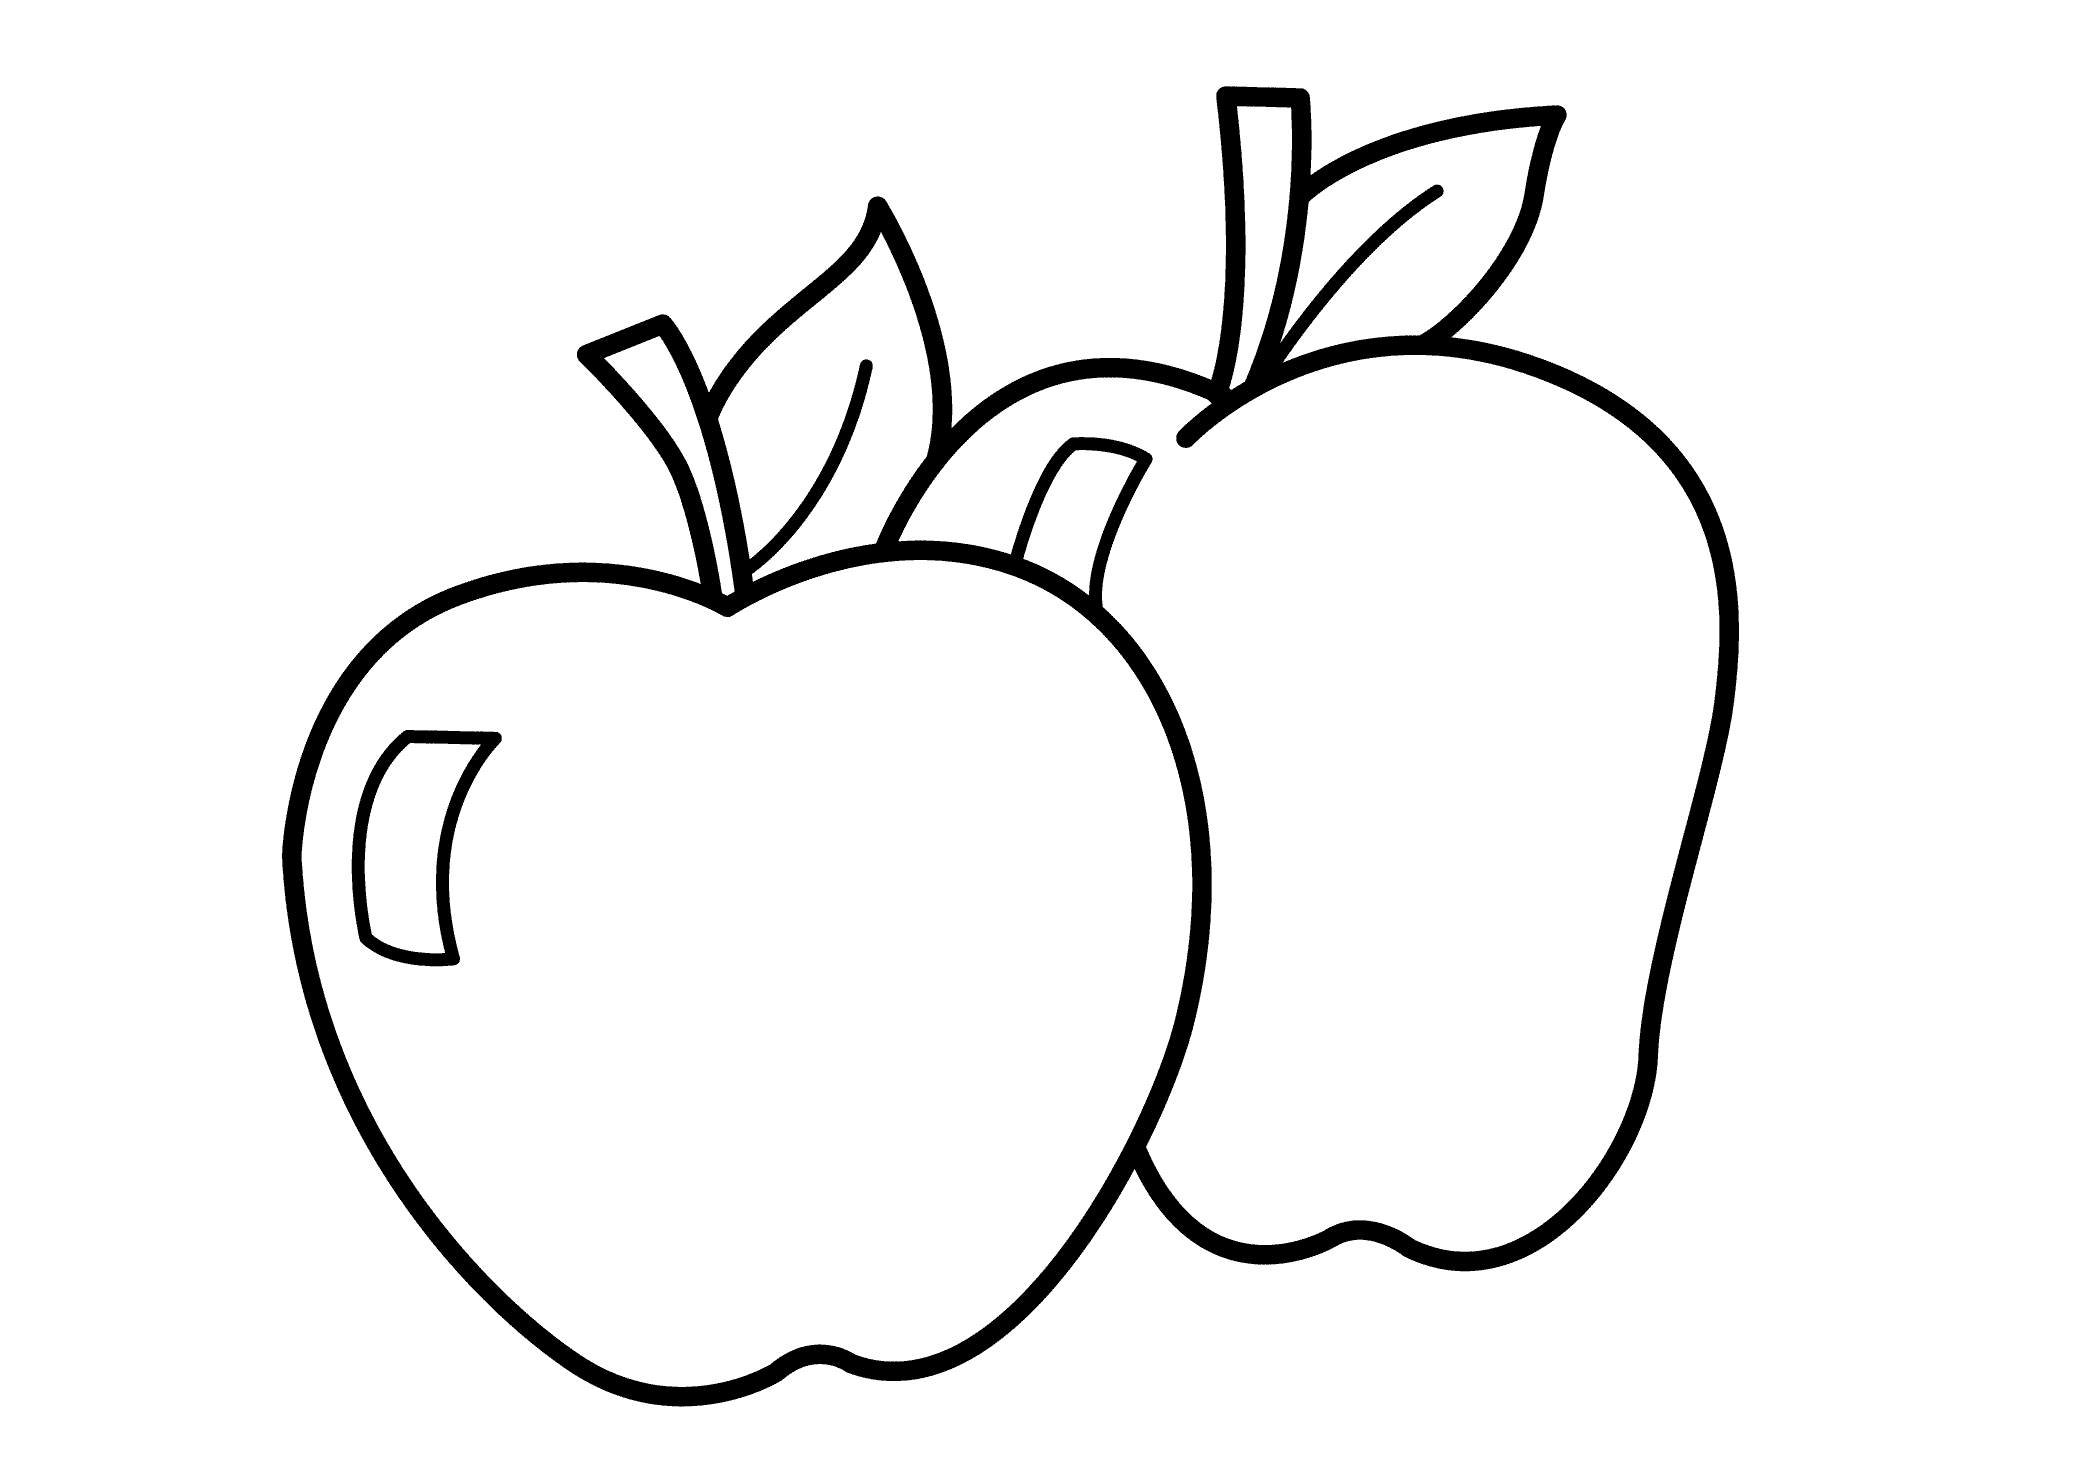 coloring page of an apple free printable apple coloring pages for kids page an apple of coloring